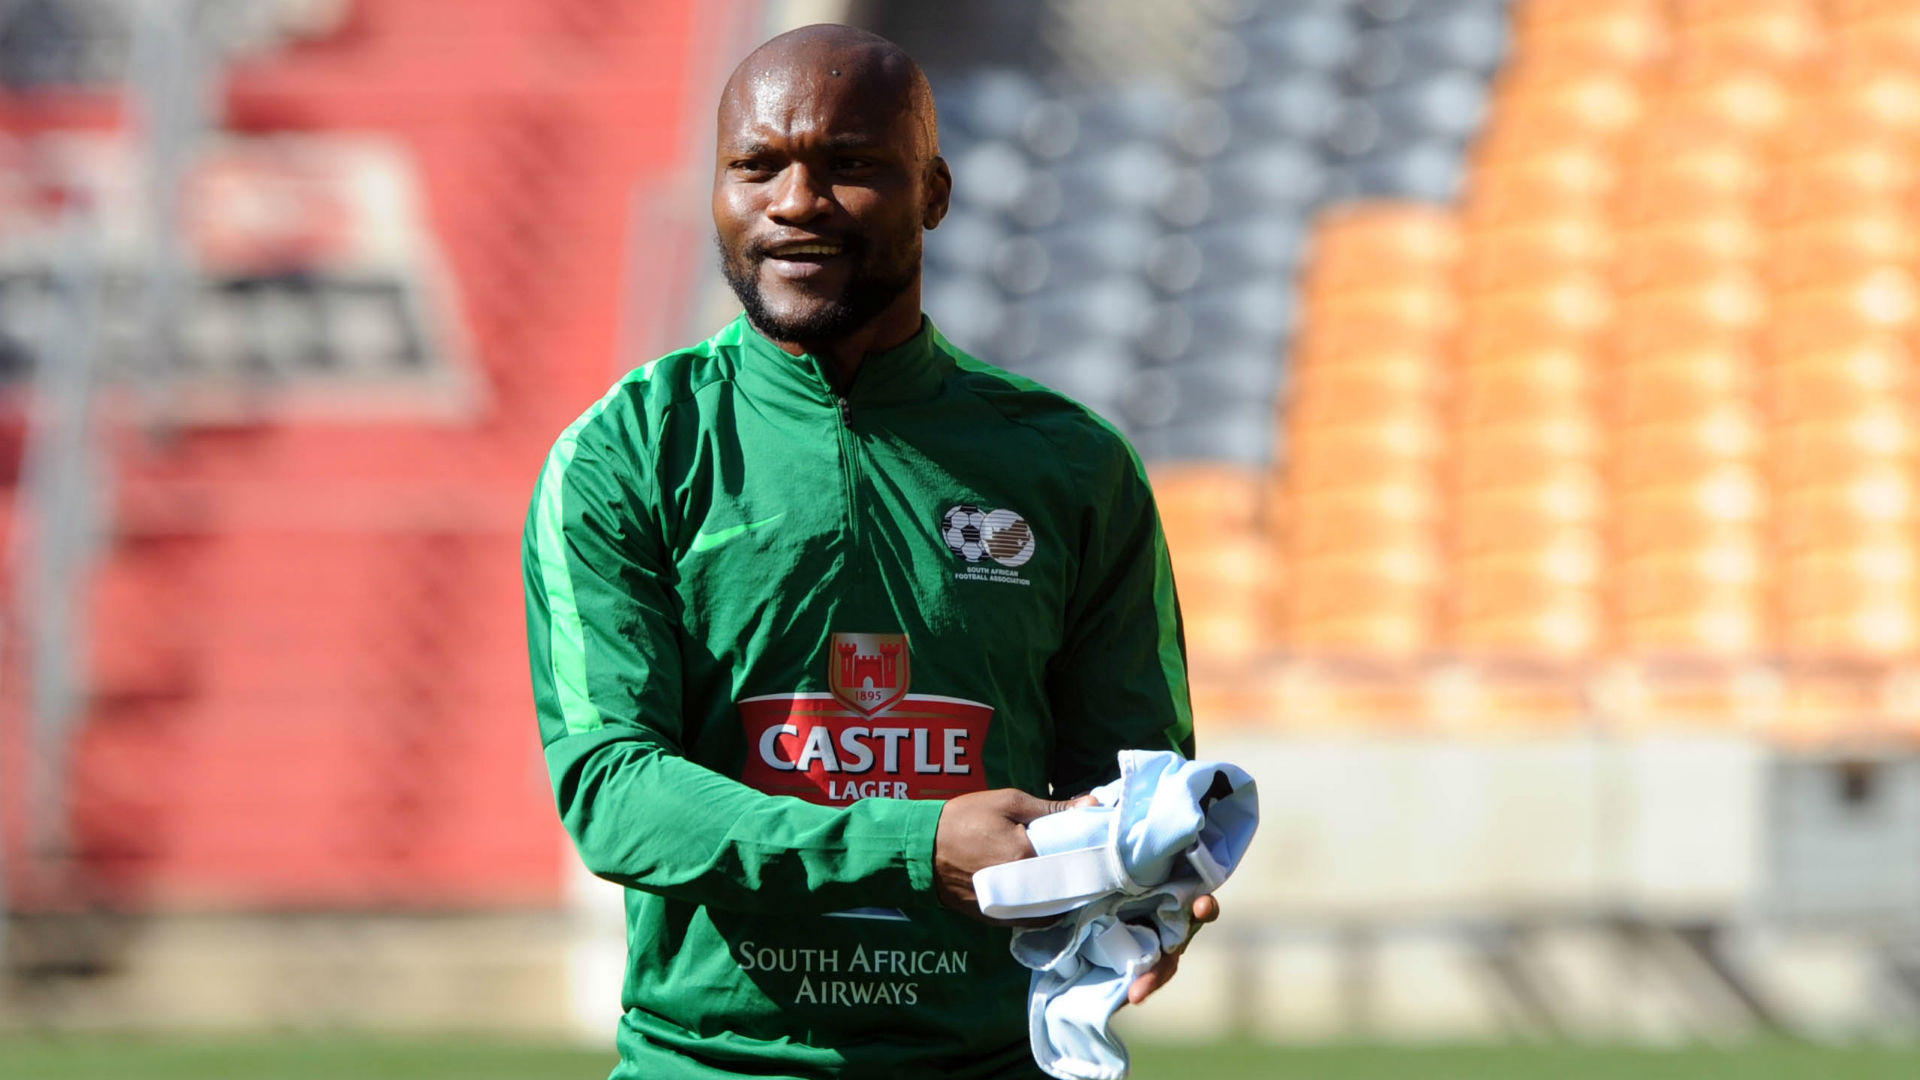 Pitso Mosimane reveals why he signed Tokelo Rantie for Mamelodi Sundowns